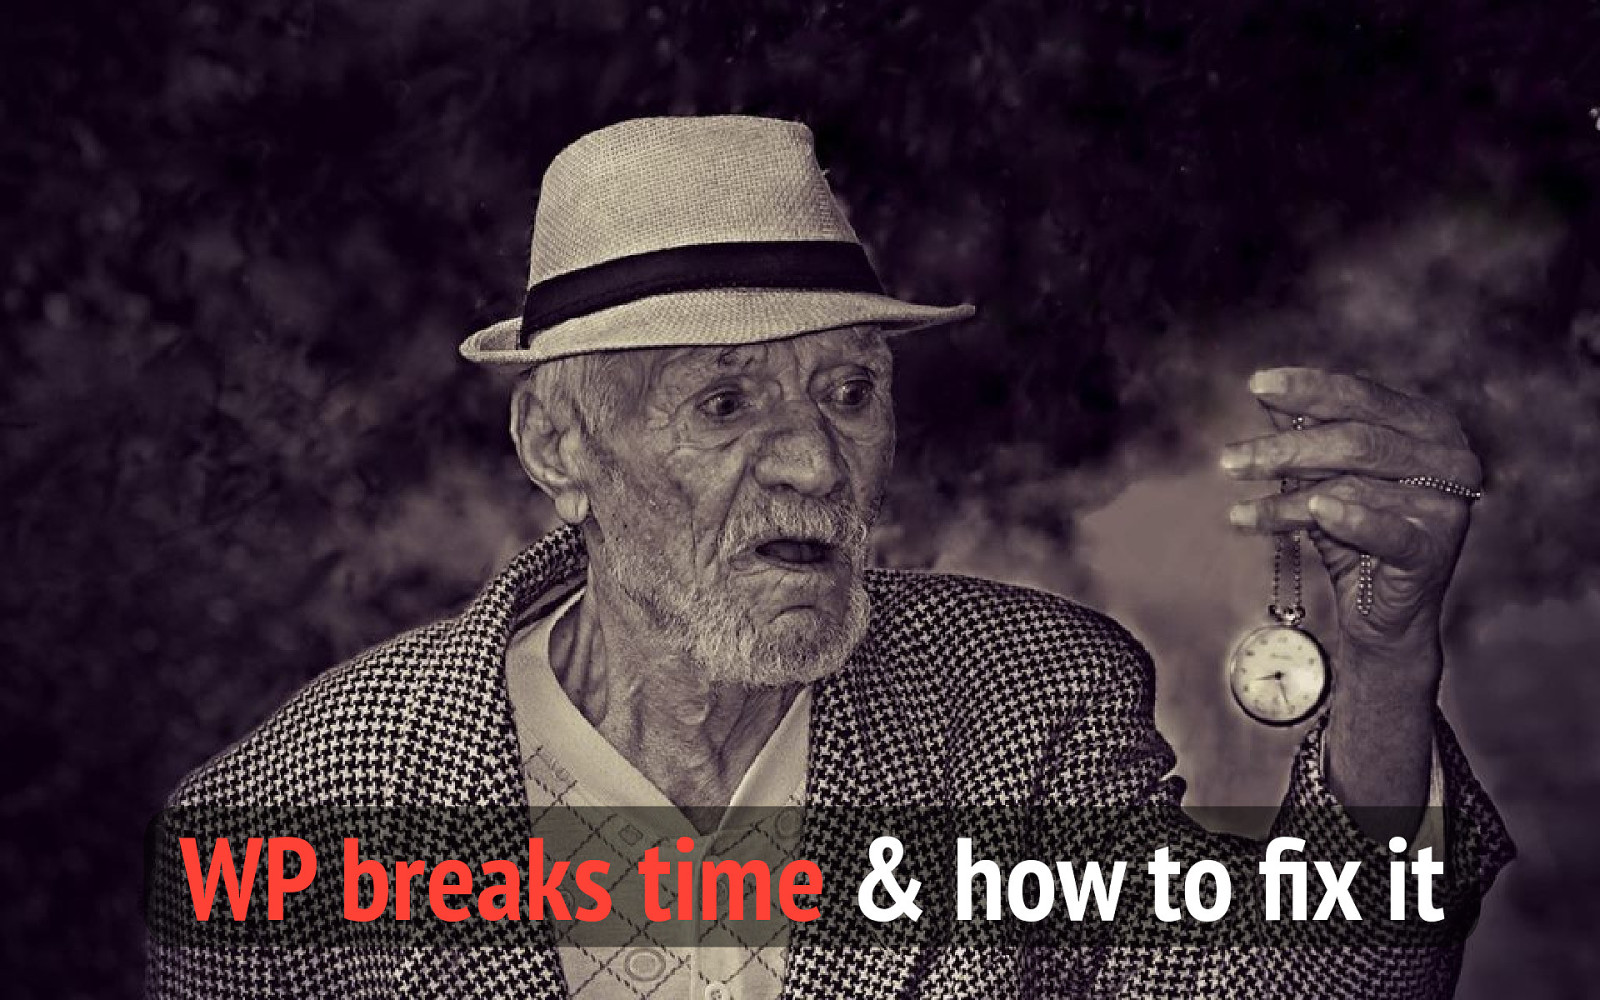 WordPress breaks time (and how to fix it)